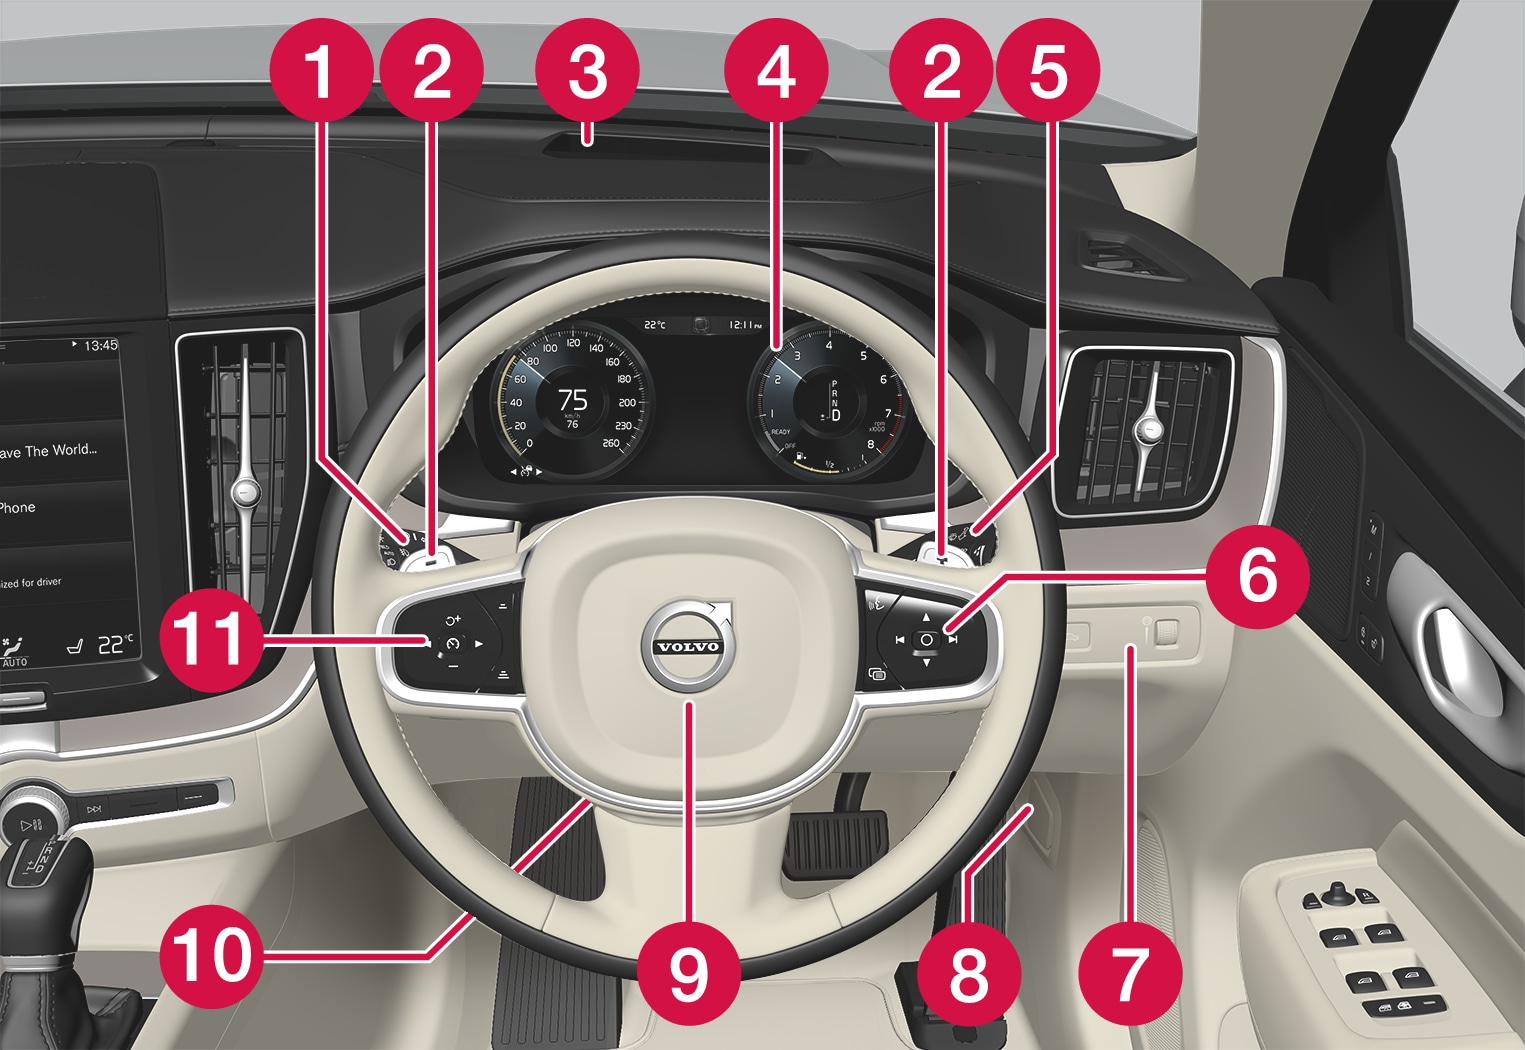 P5-1717-XC60-Instrument and controls overview RHD